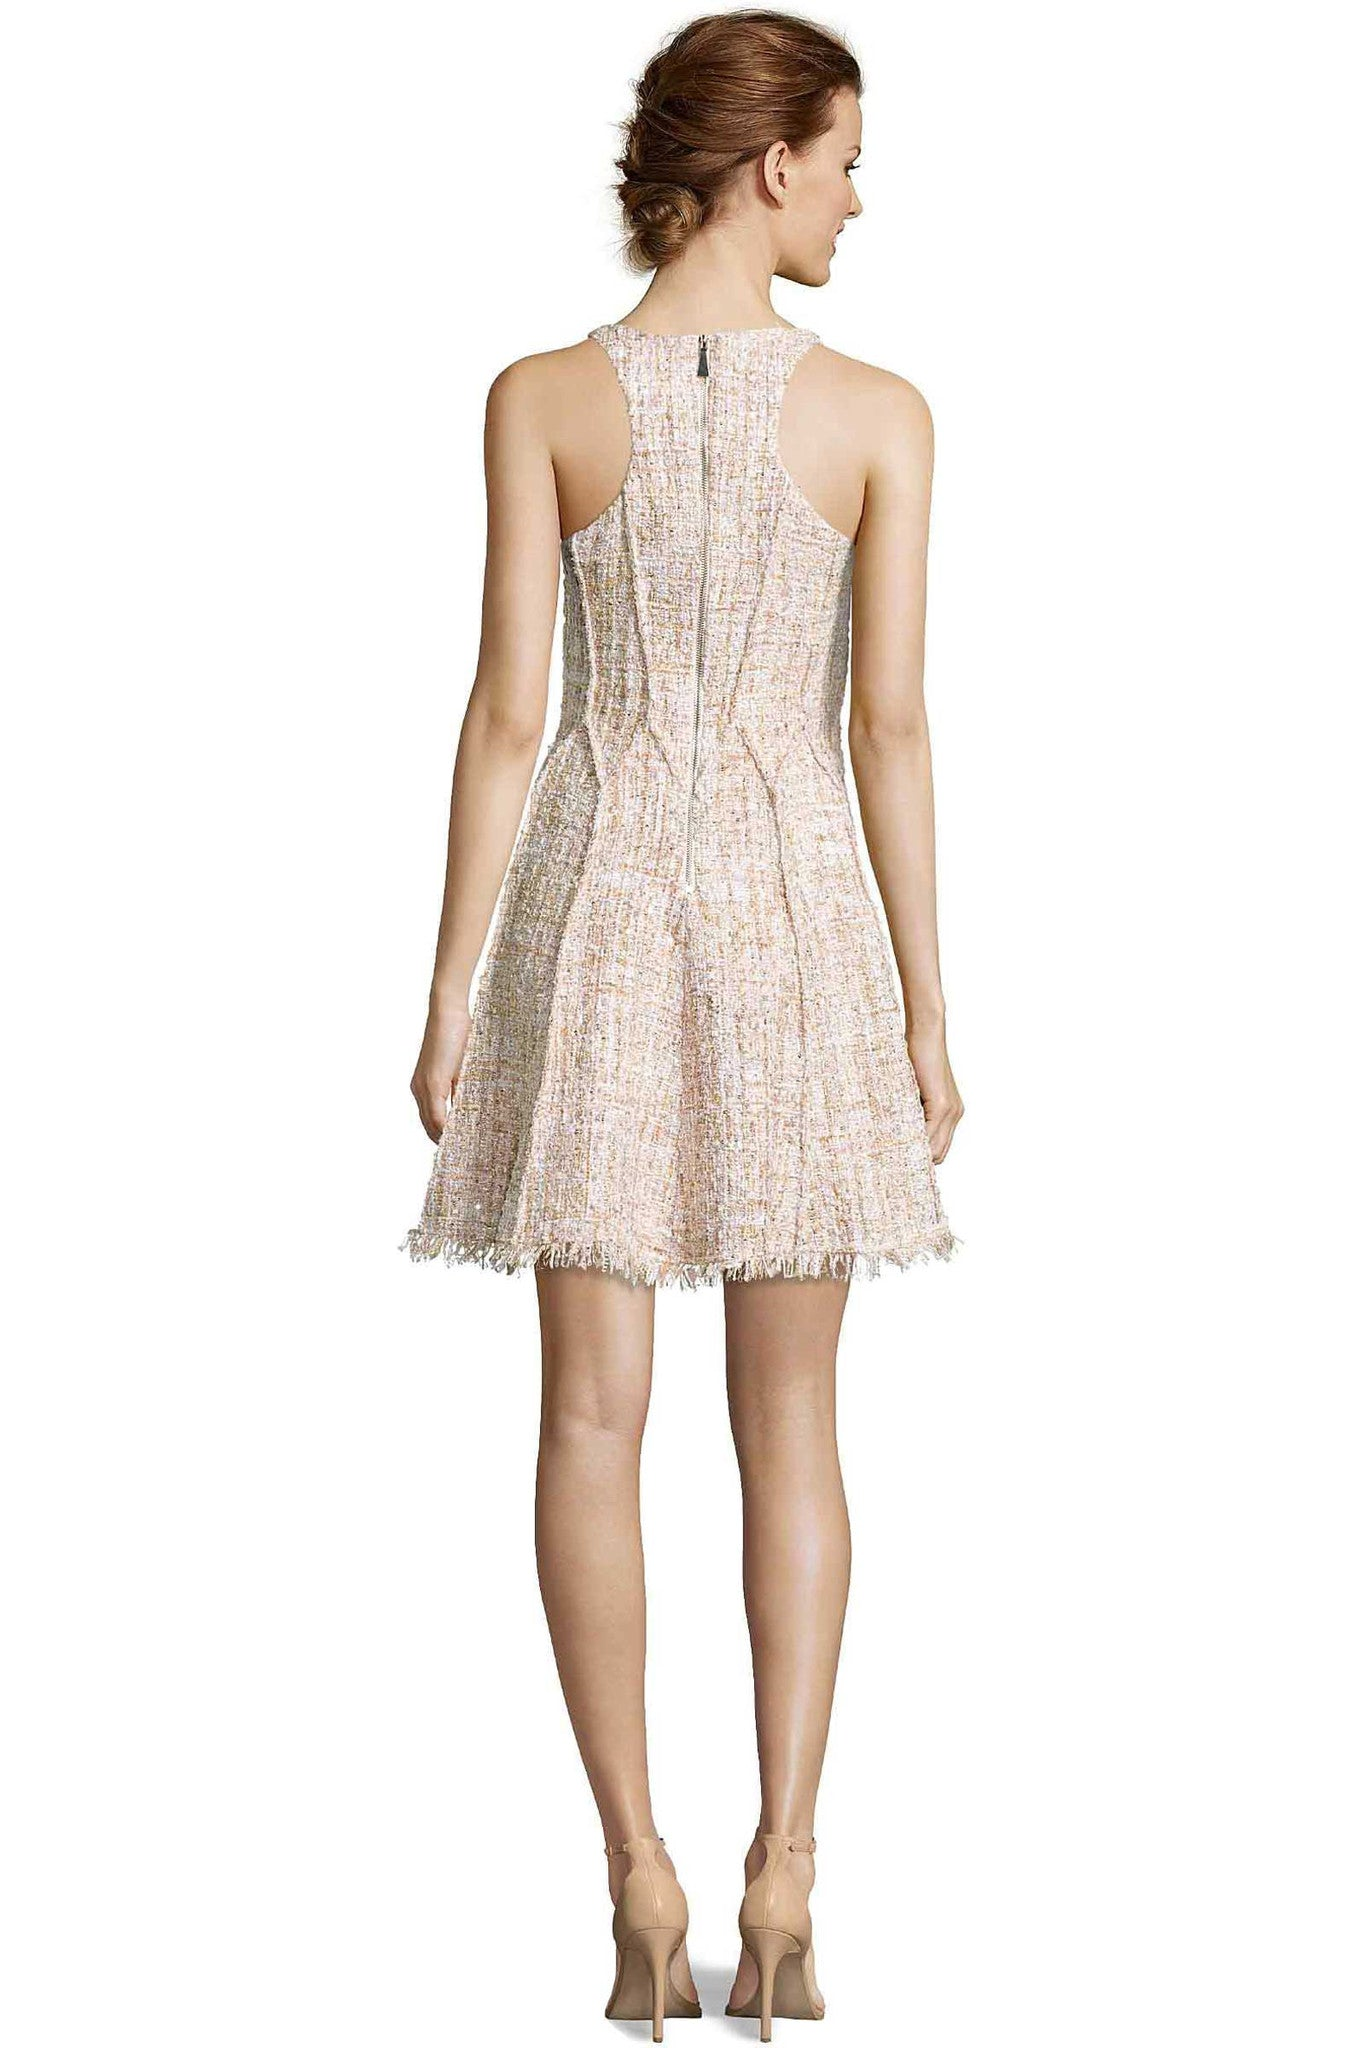 Jay Godfrey Blush Tweed Fit-and-Flare Dress - Back View